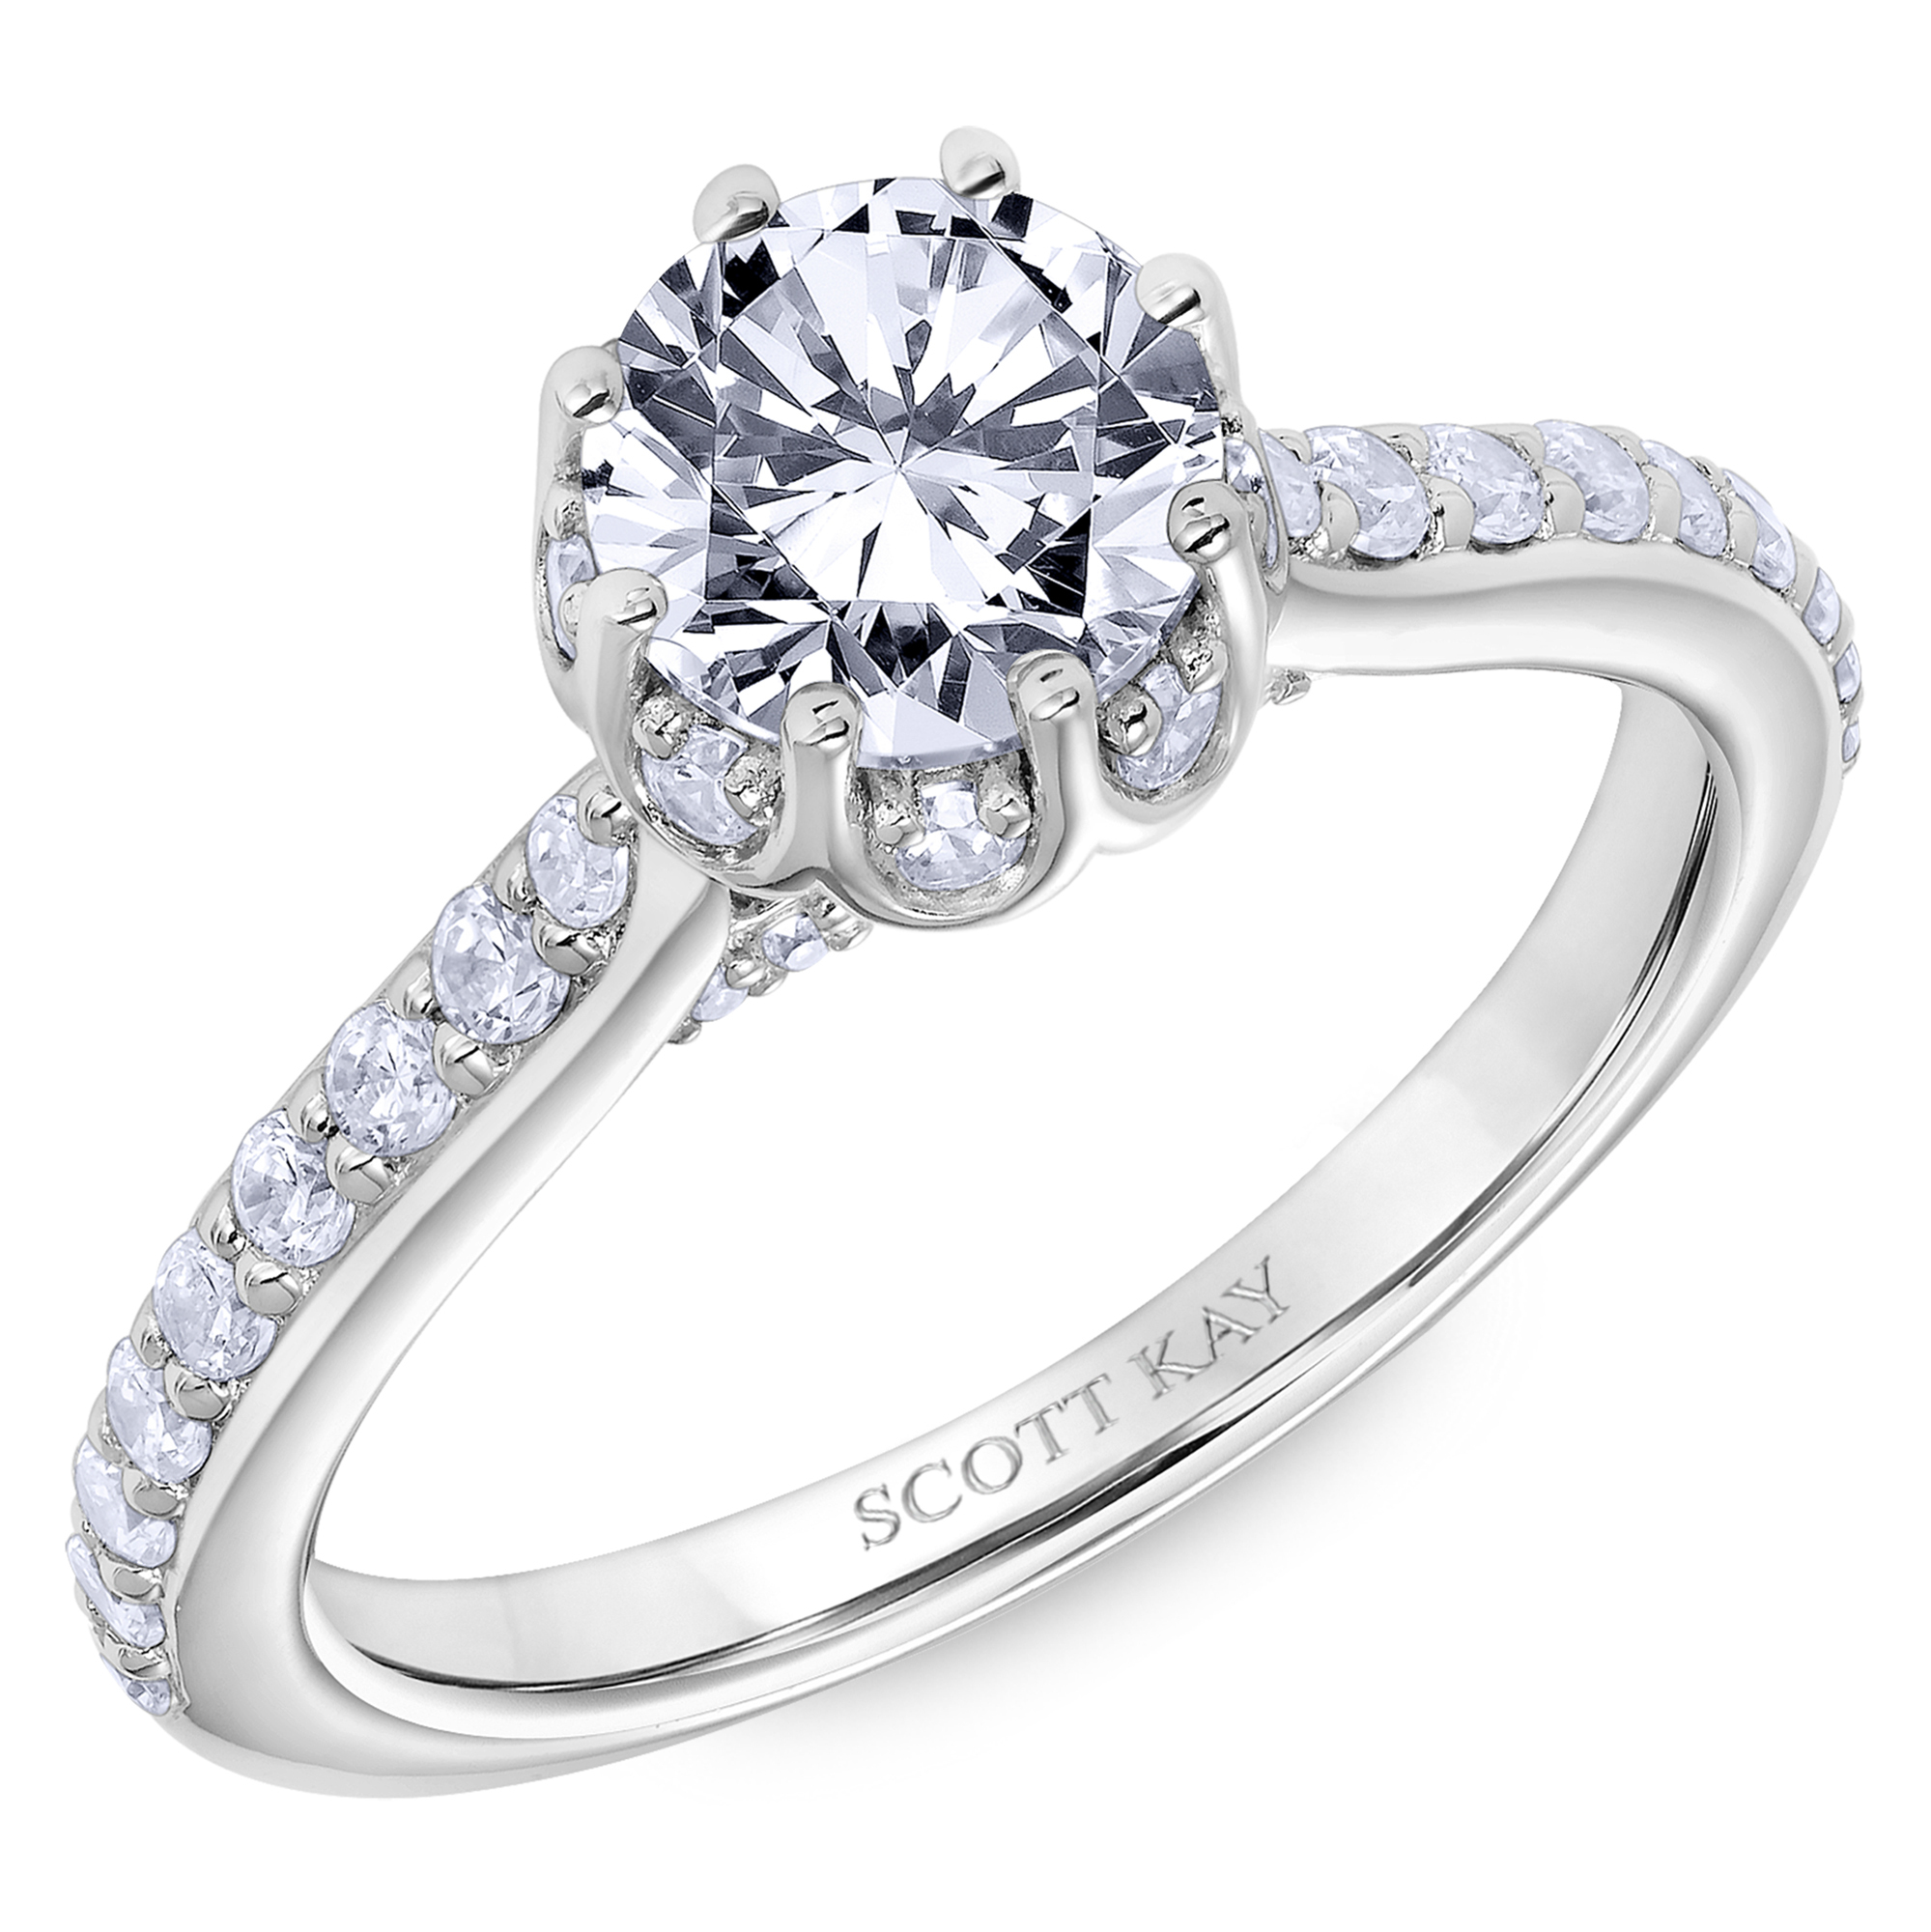 category ang product jewelers engagement josephk rings designers kay scott